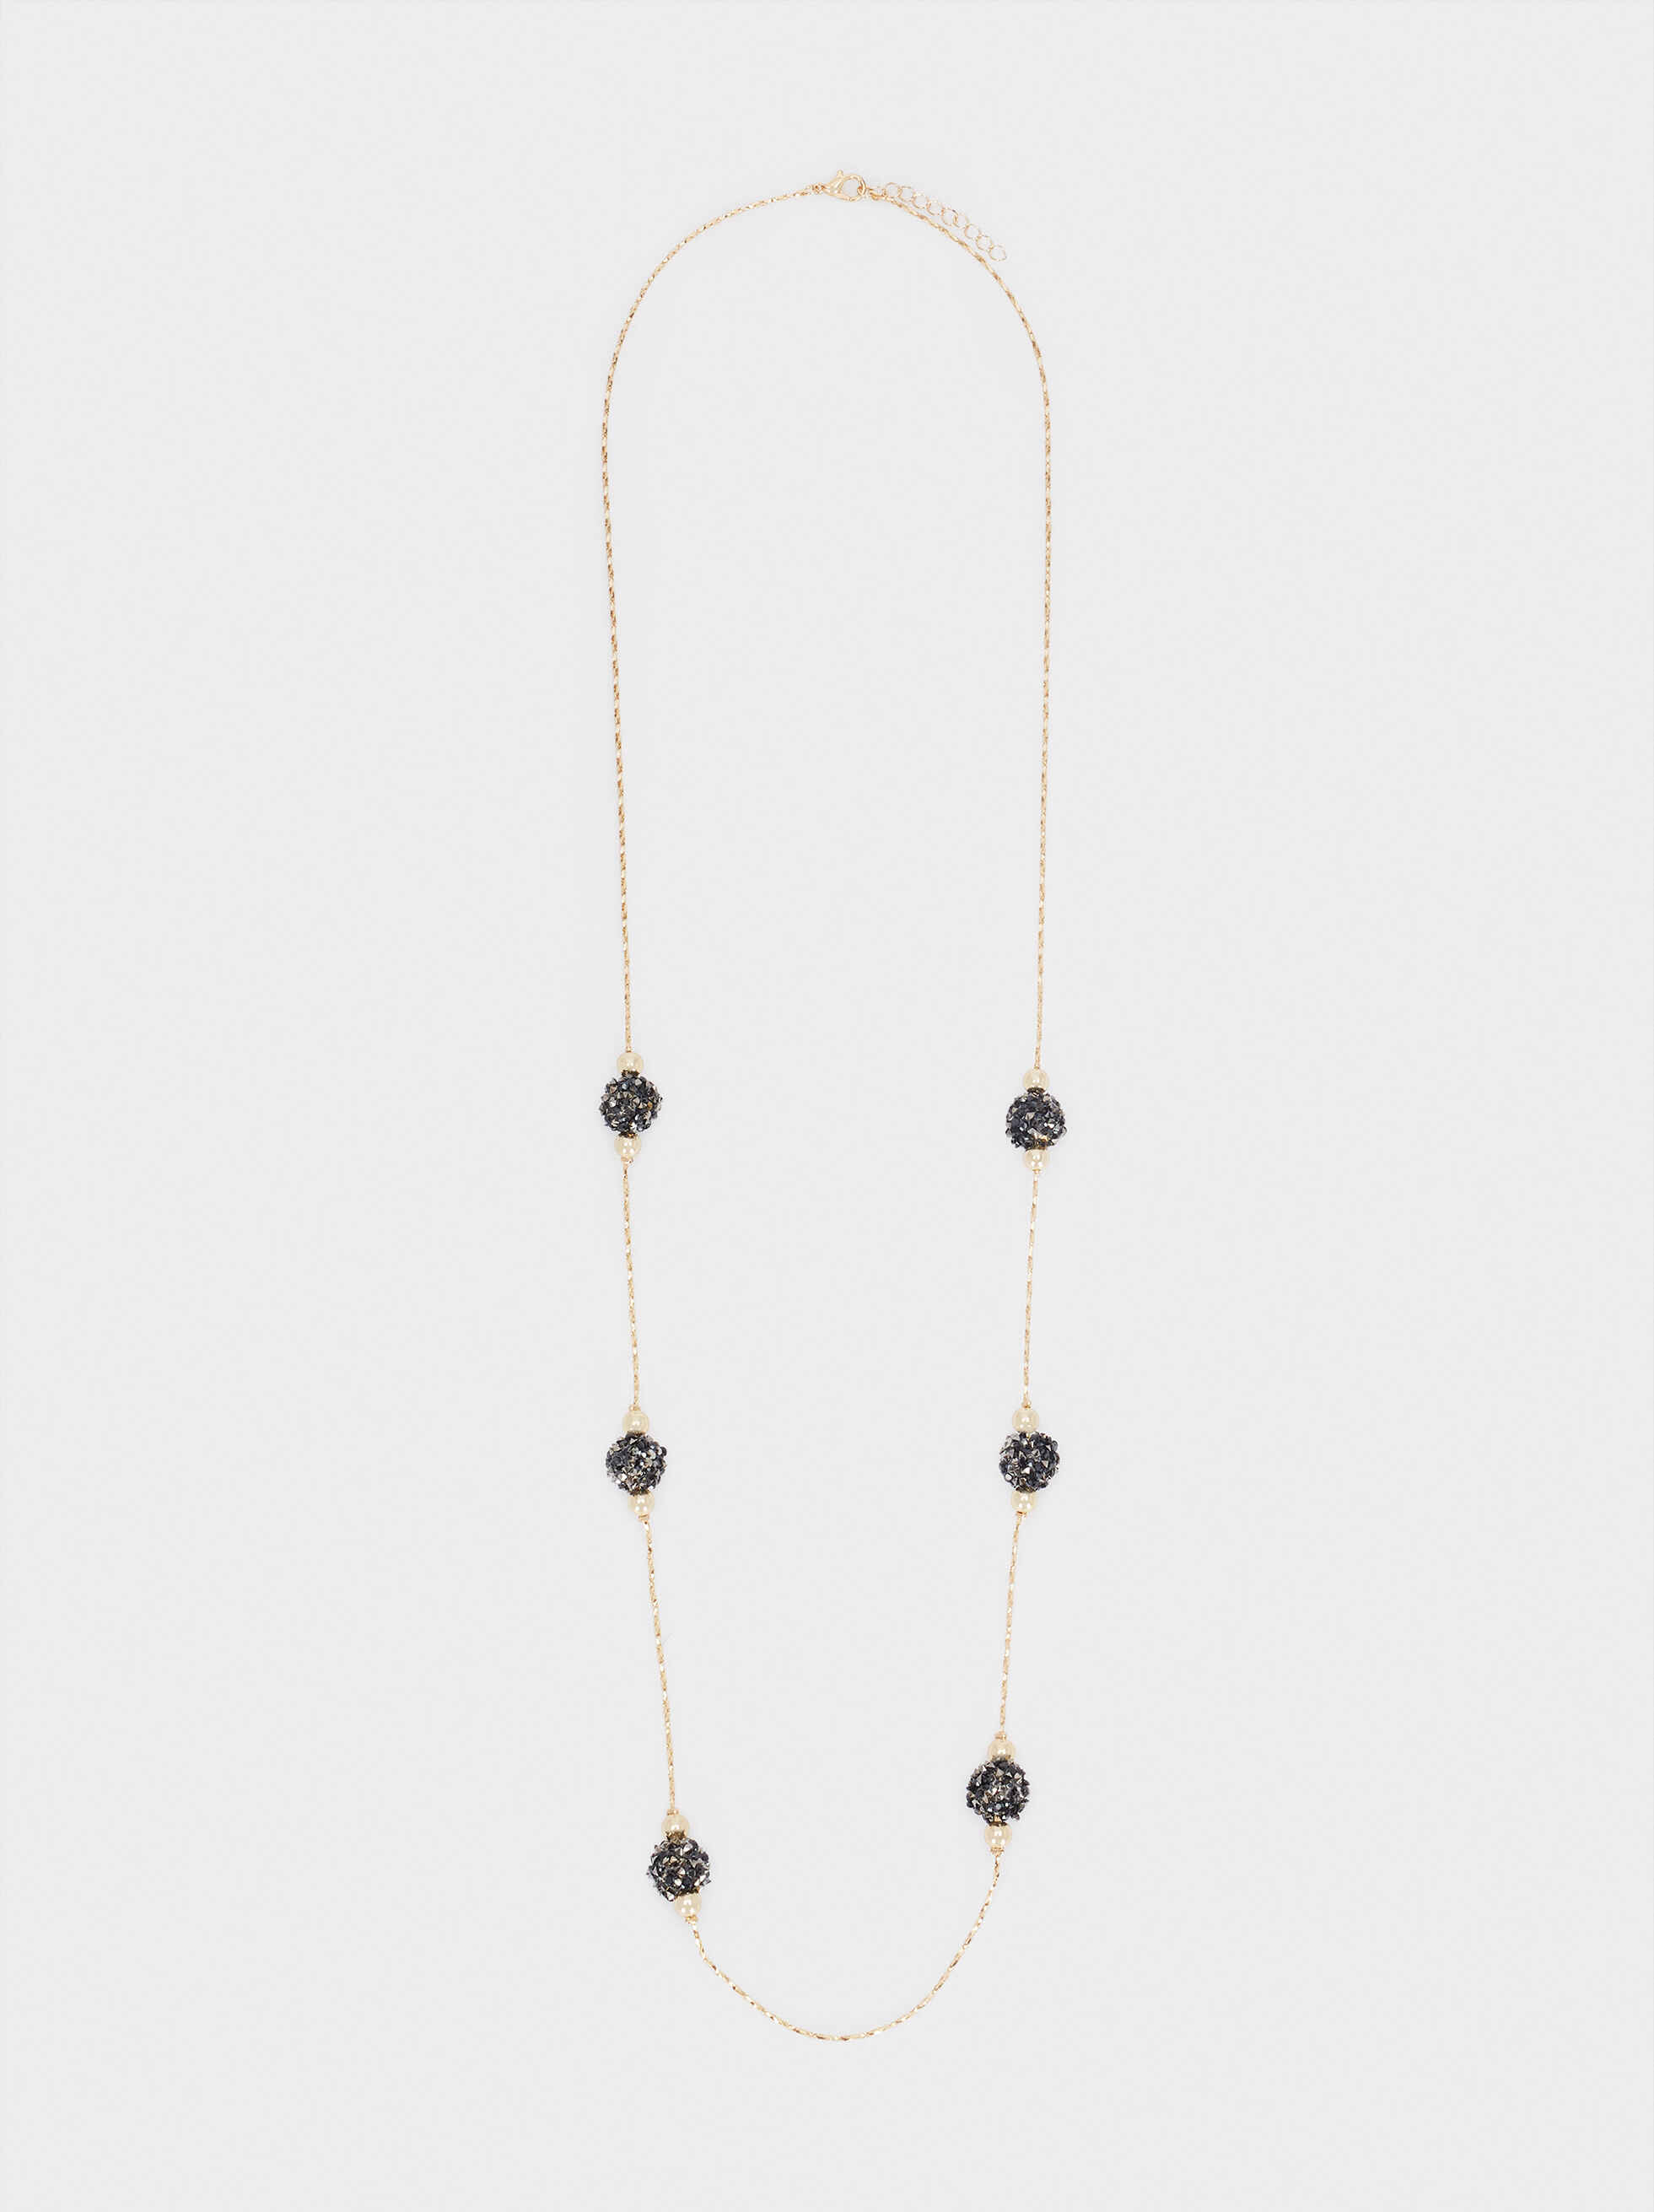 Long Gold Necklace With Crystal And Bead Details, Golden, hi-res